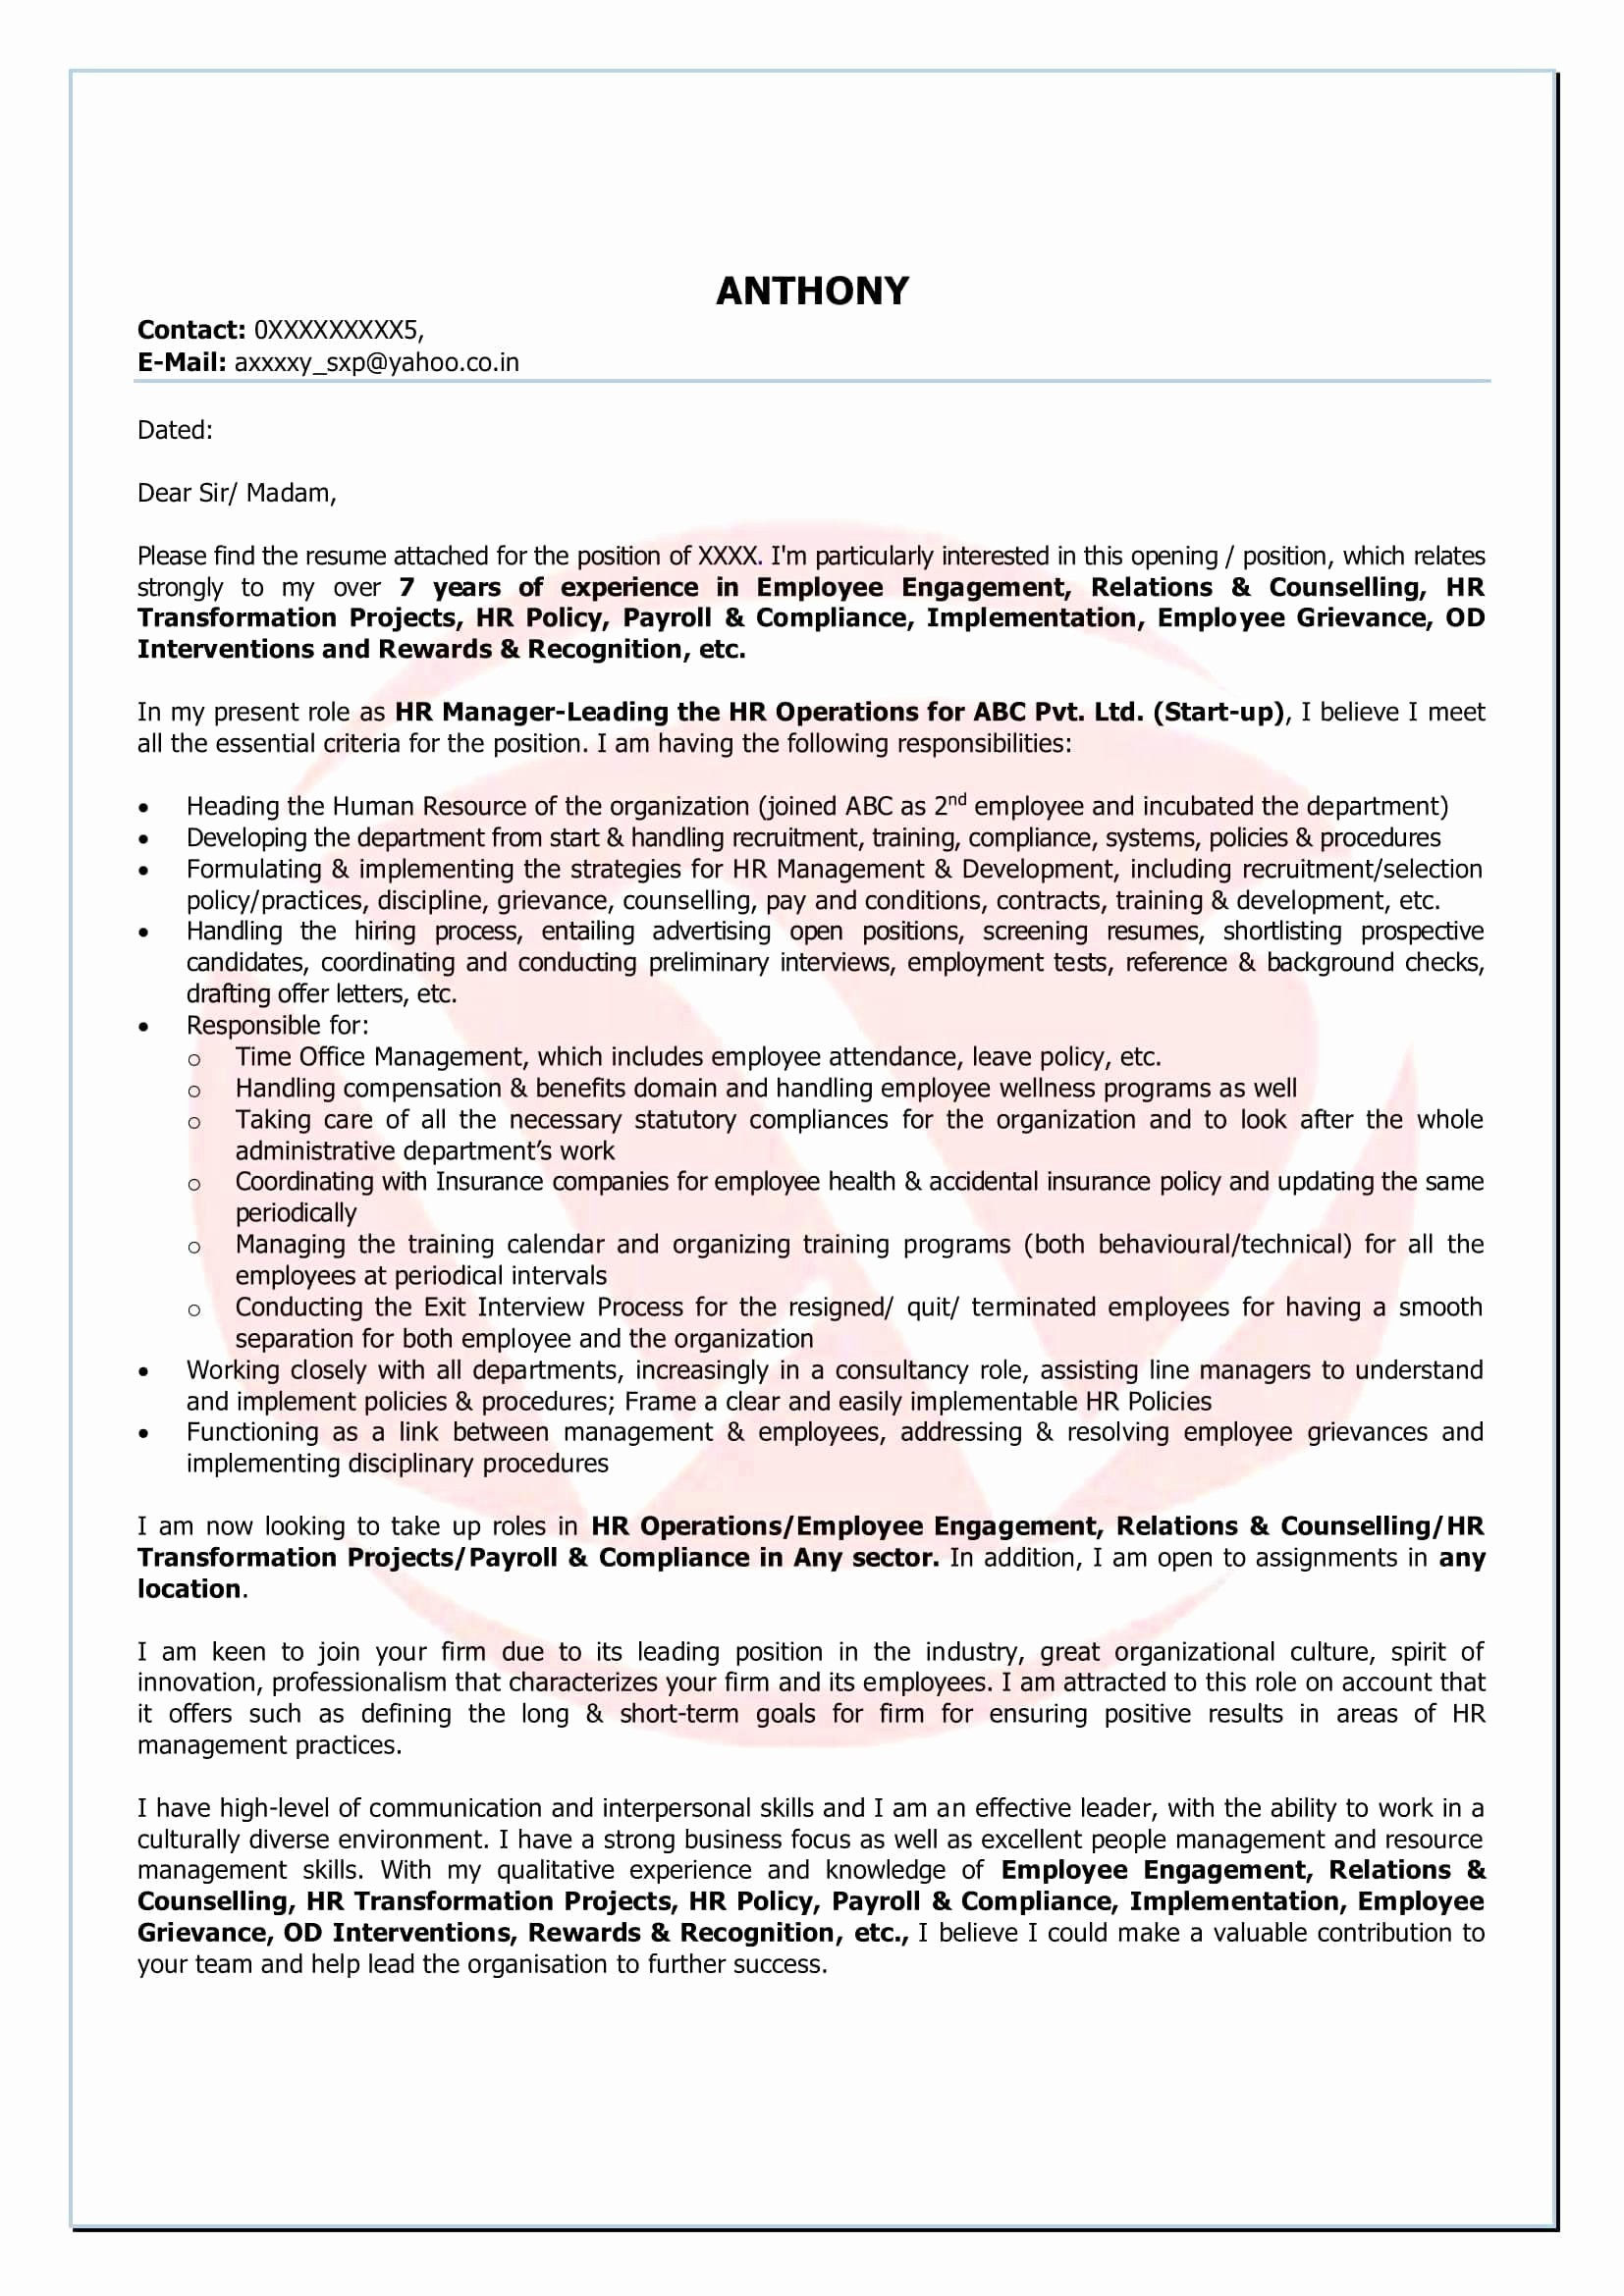 Conditional Offer Of Employment Letter Template - Job Fer Letter for Accountant Valid Cover Letter for Accounting